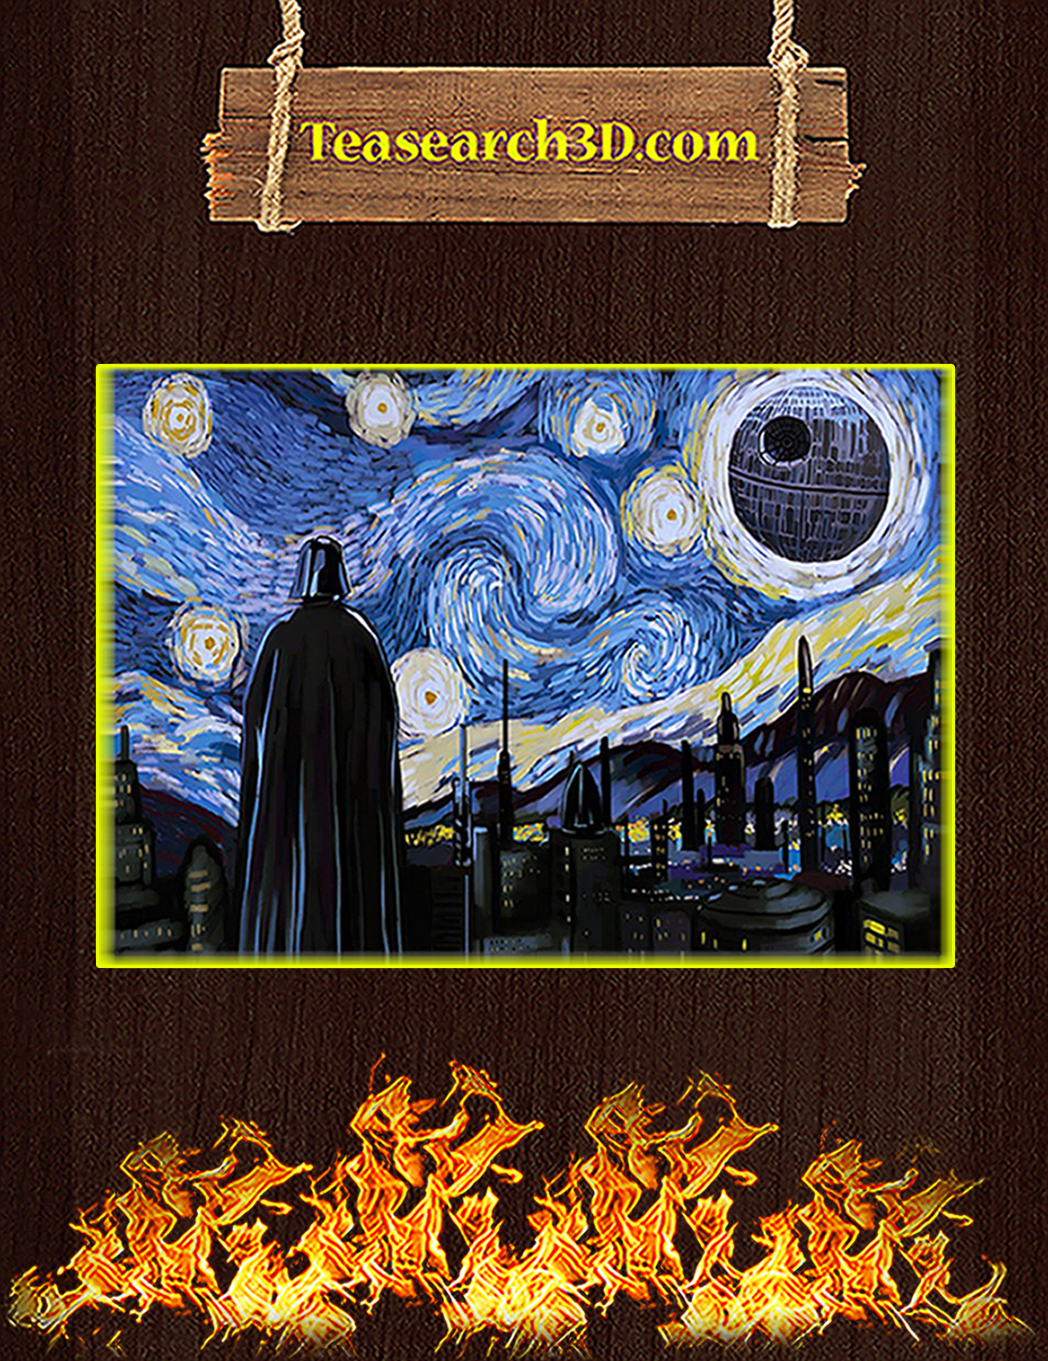 Darth vader starry night poster A1